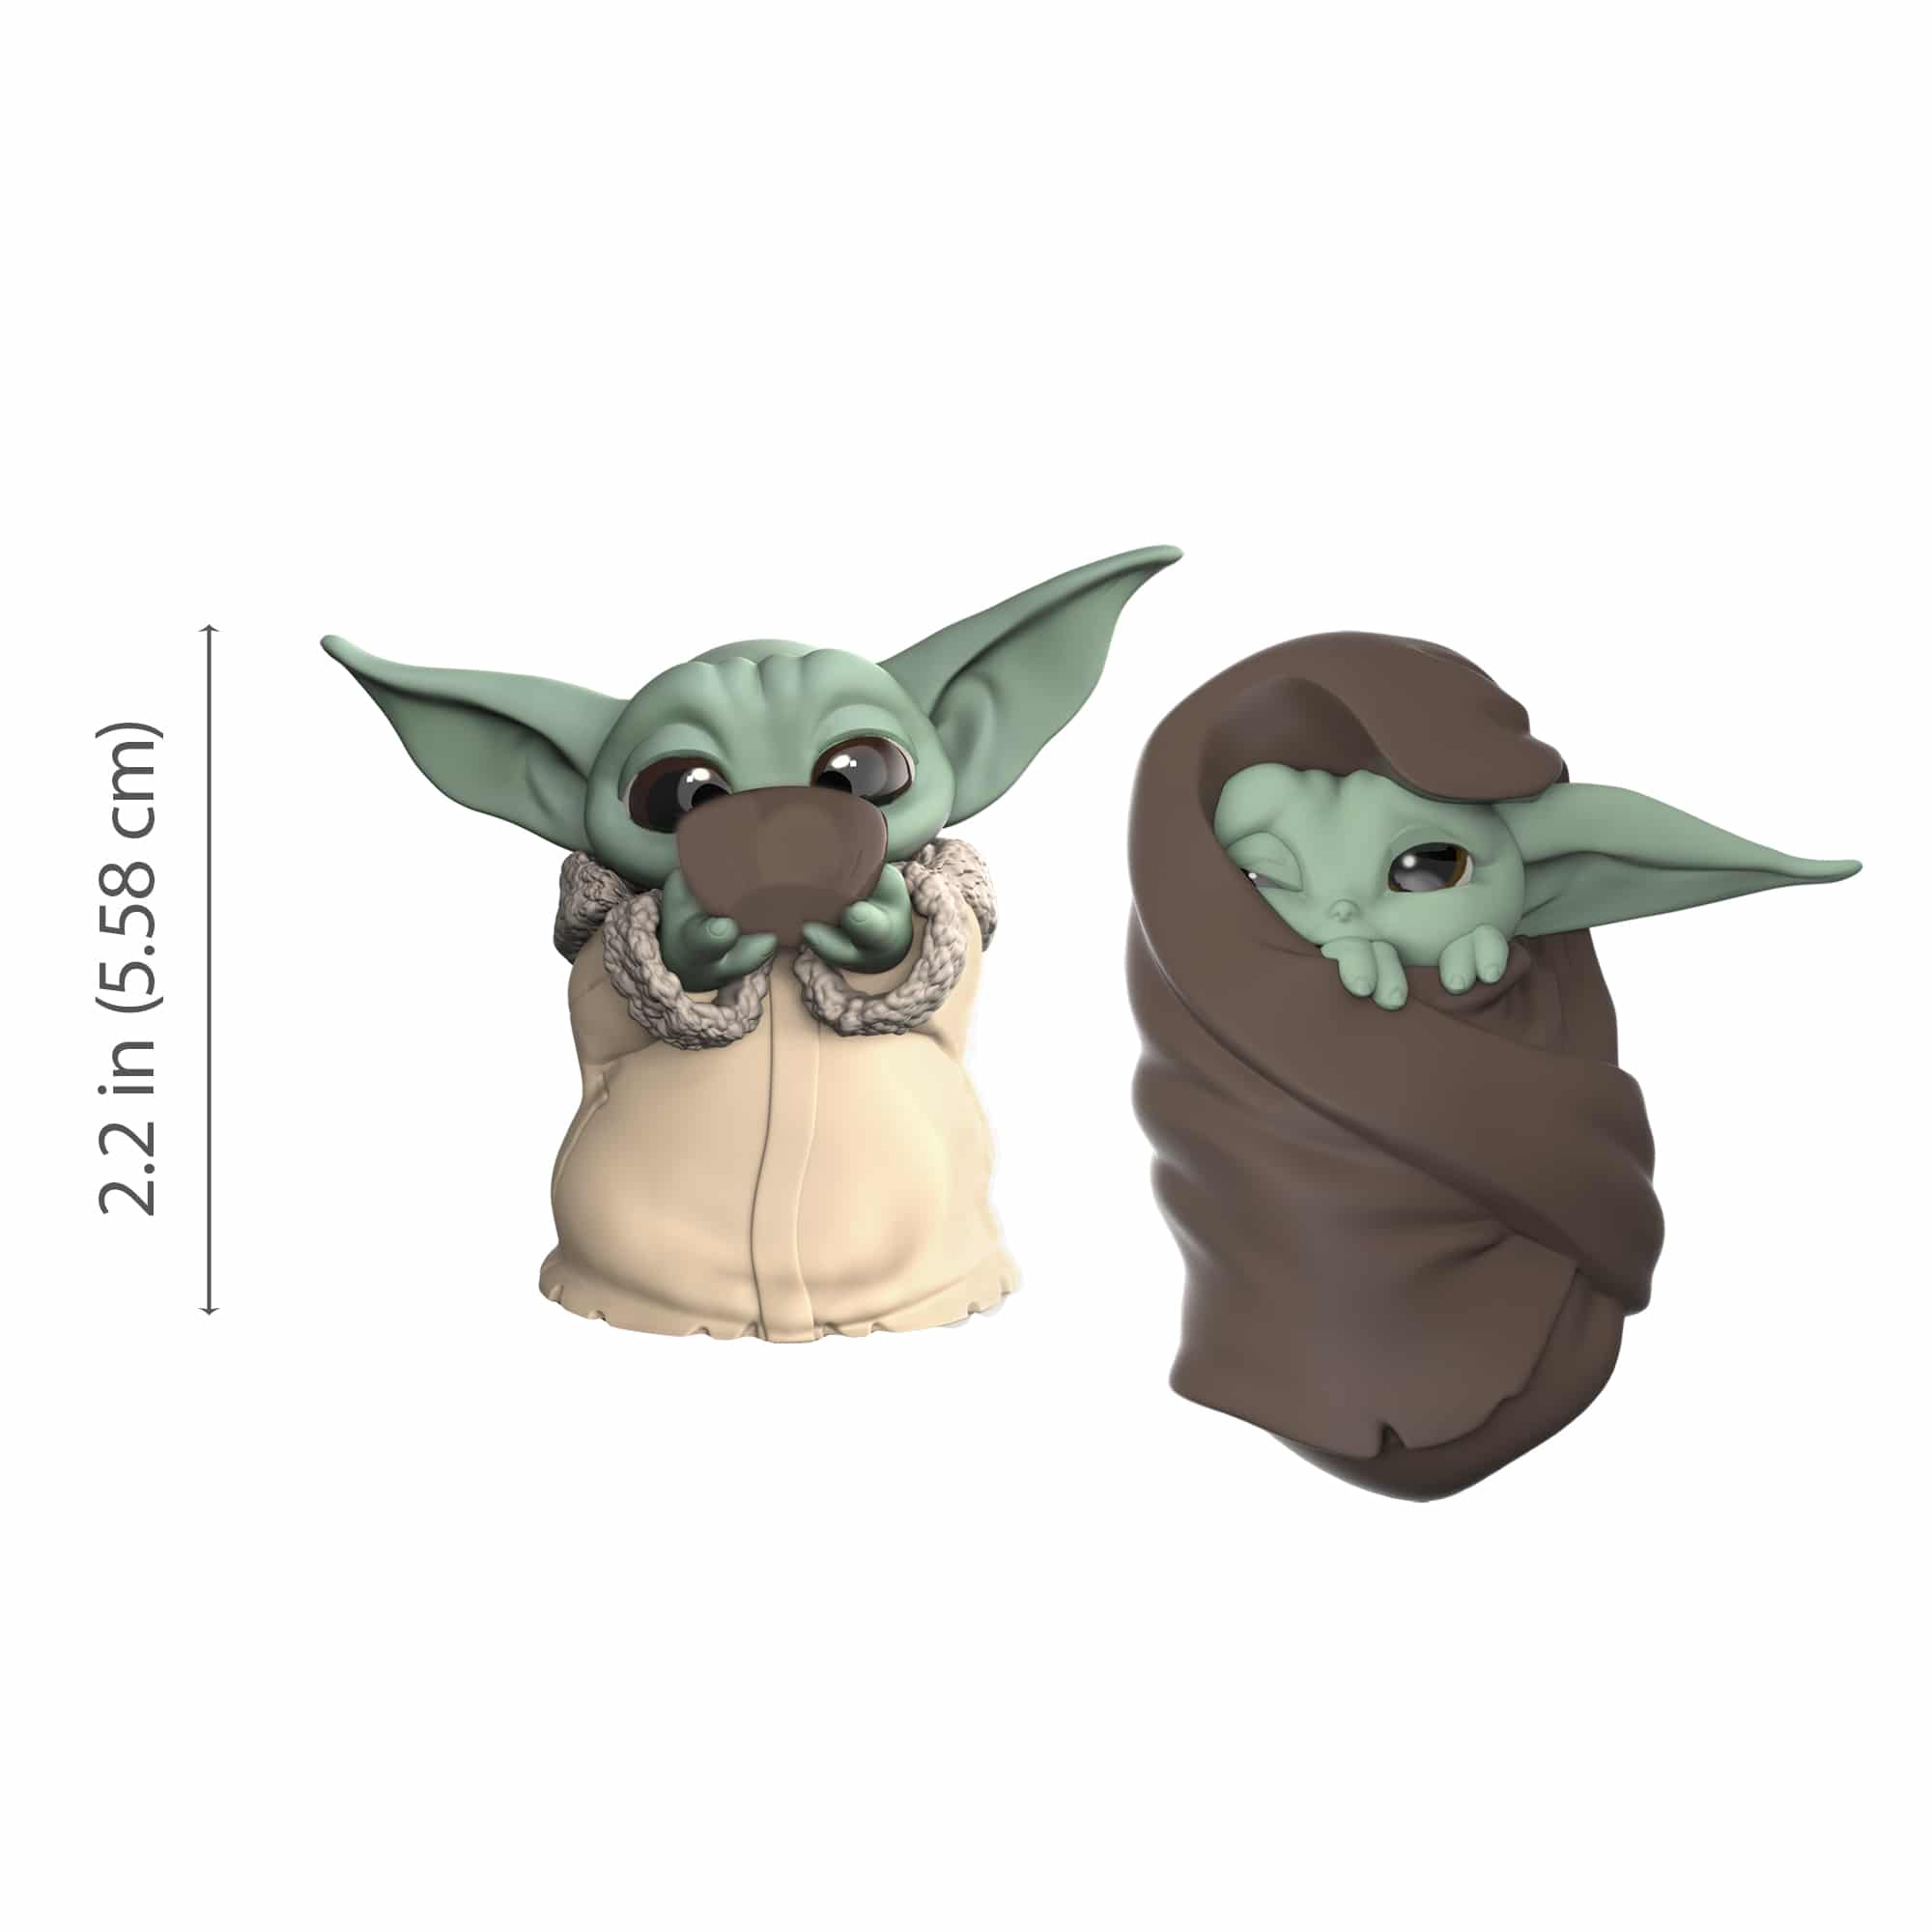 Hasbro's first Baby Yoda toys are here and they're freaking adorable 18